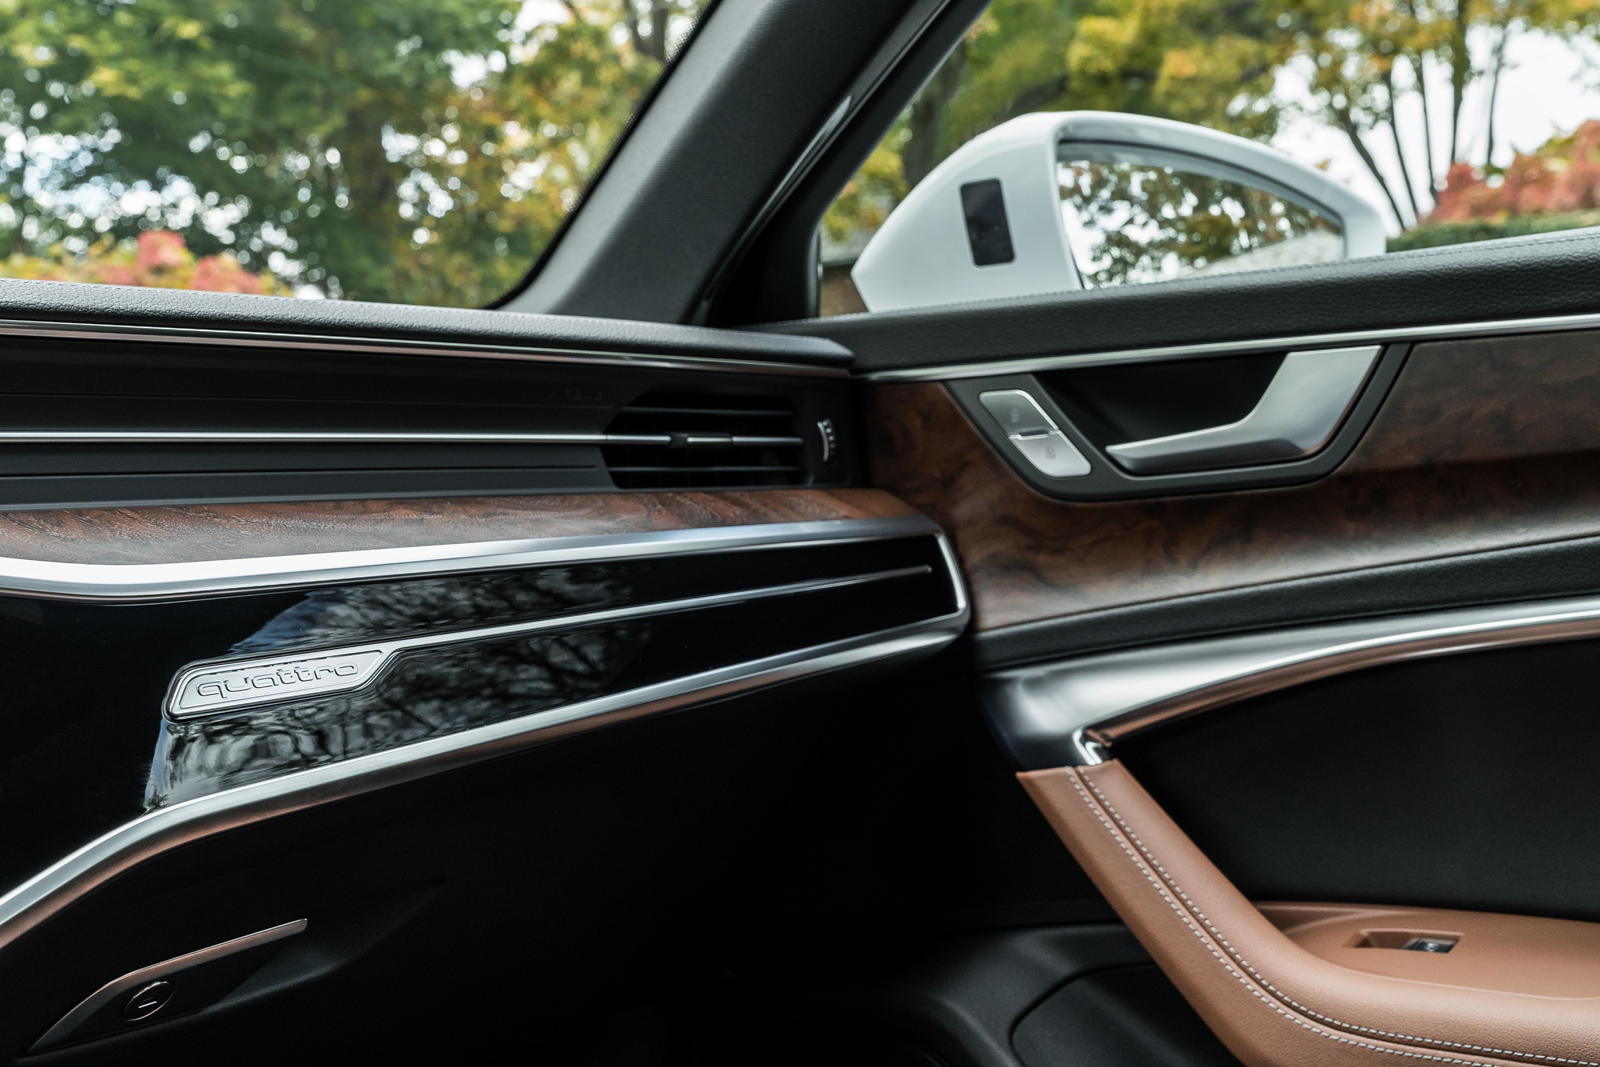 Aluminum and Wood inlays in the dashboard